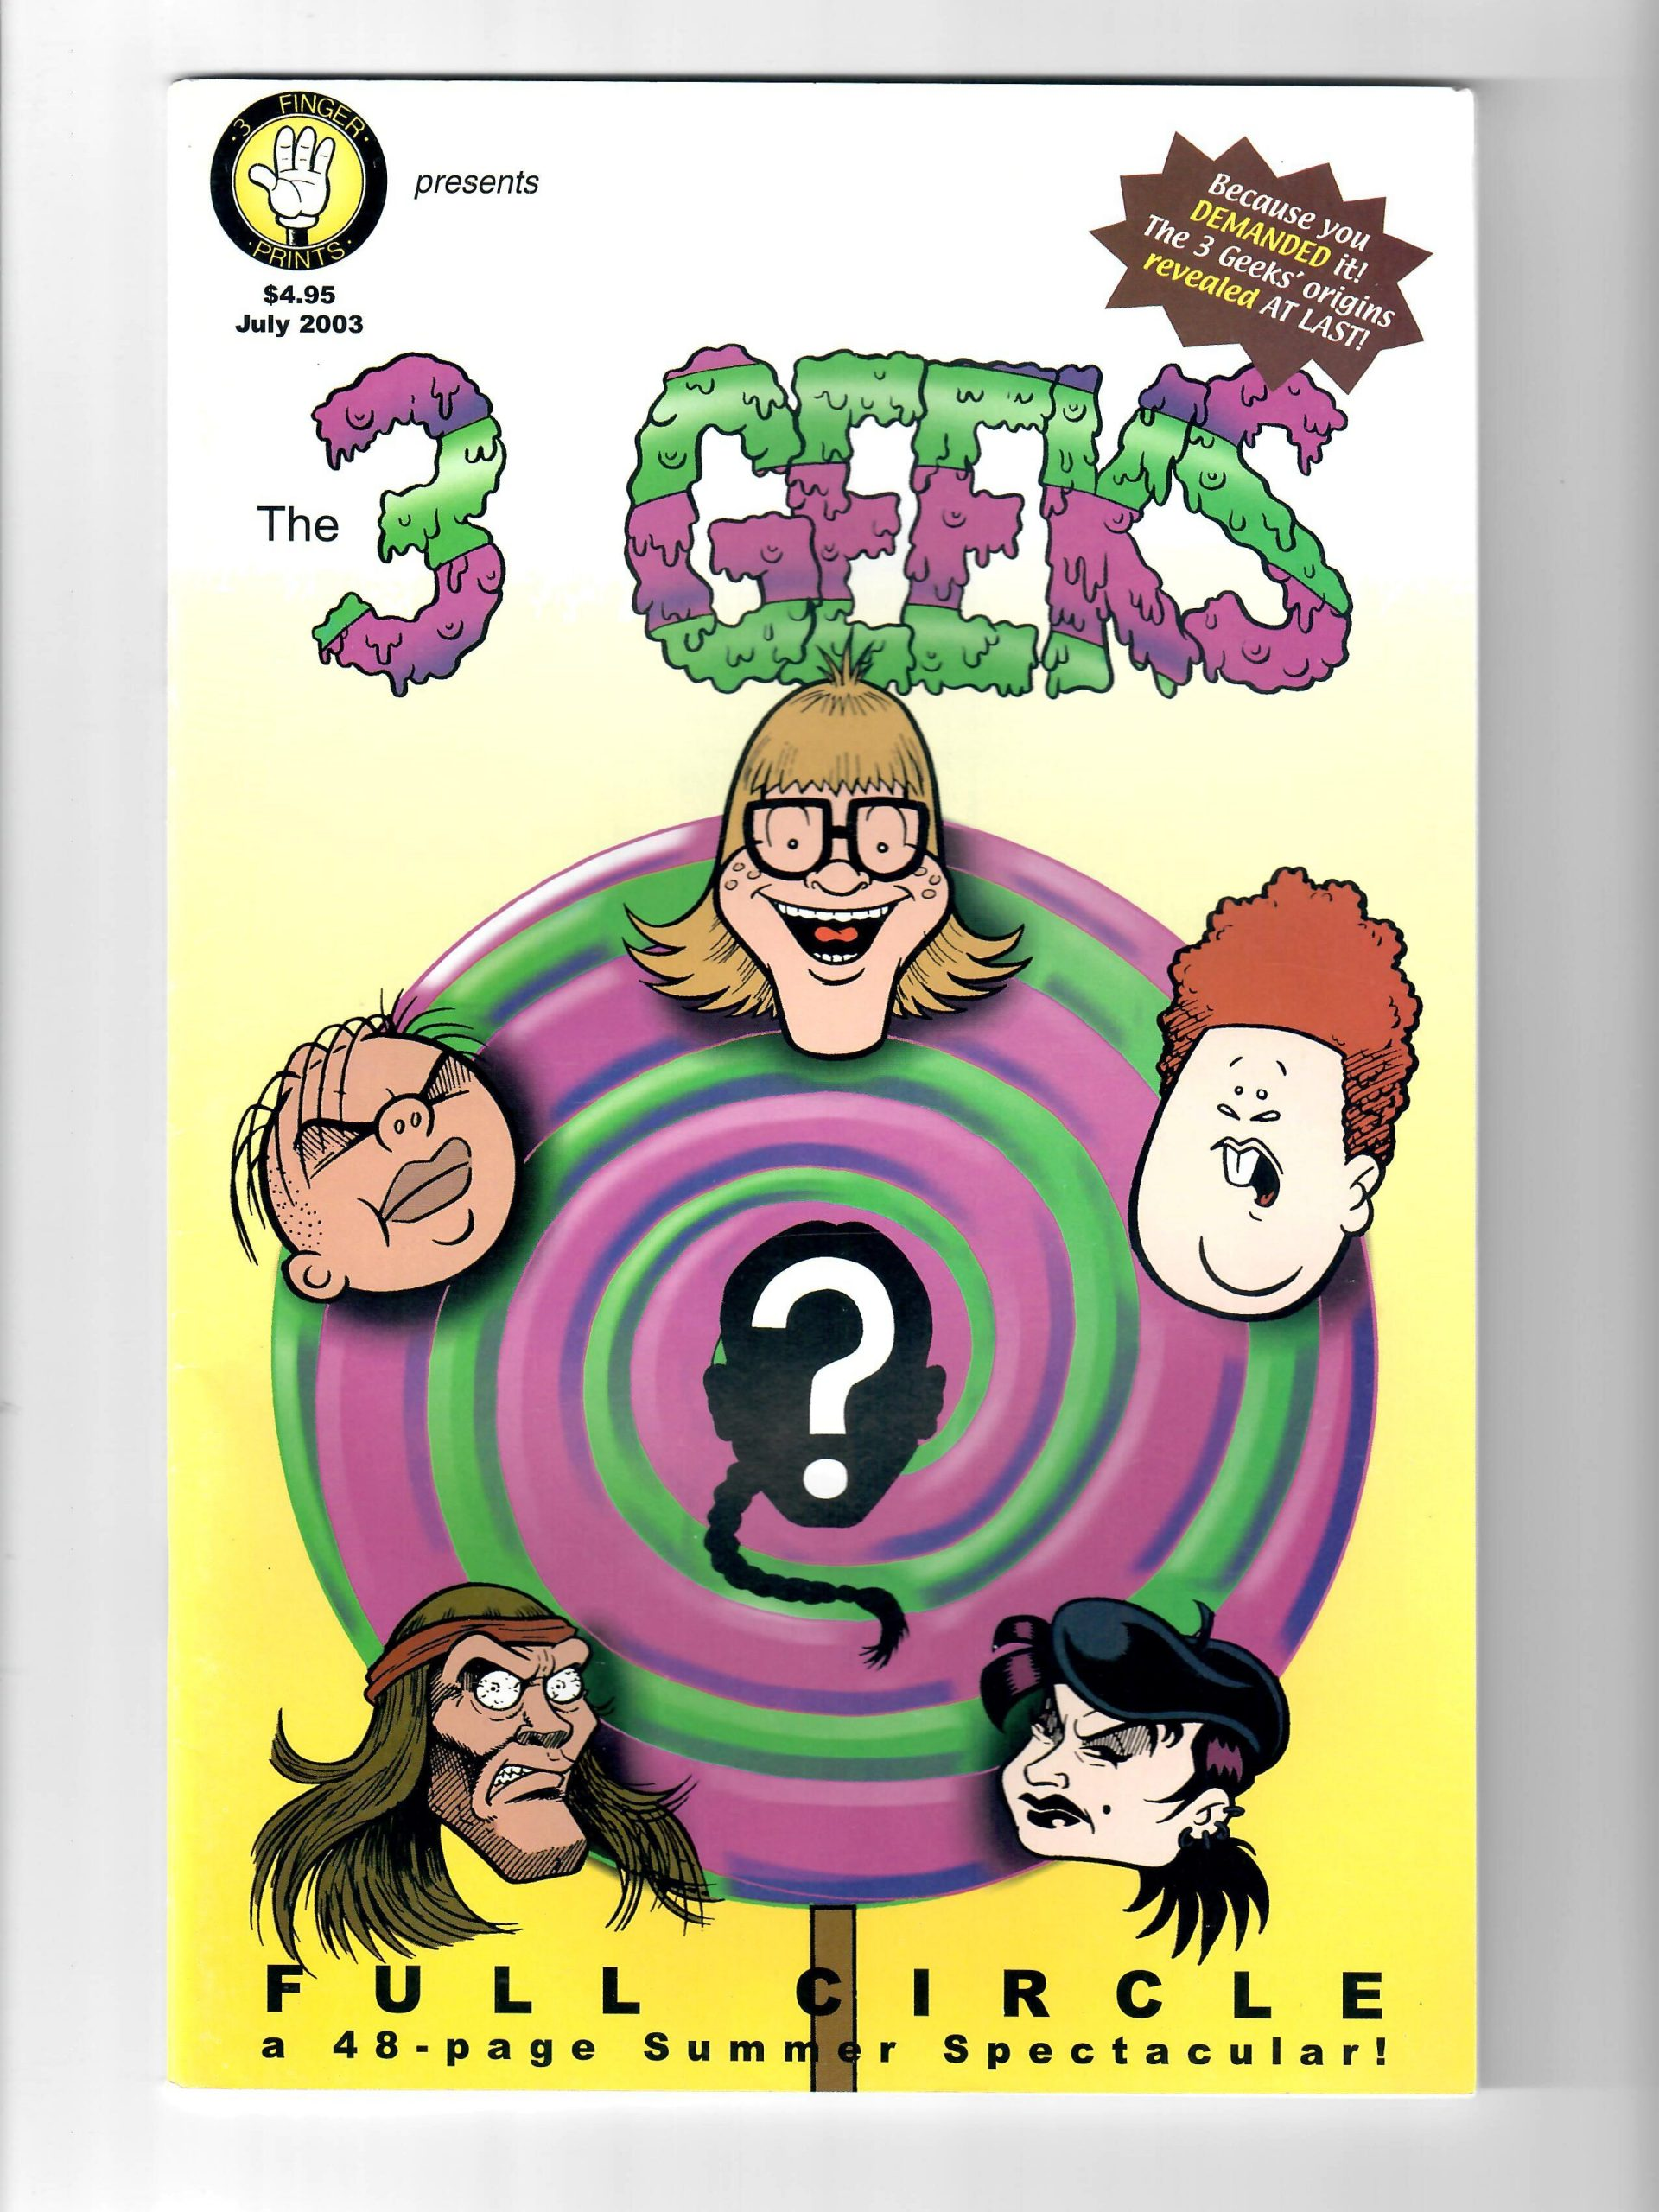 3 FINGER PRINTS COMICS THE 3 GEEKS #1 JUL 2003 COMIC #157586-6